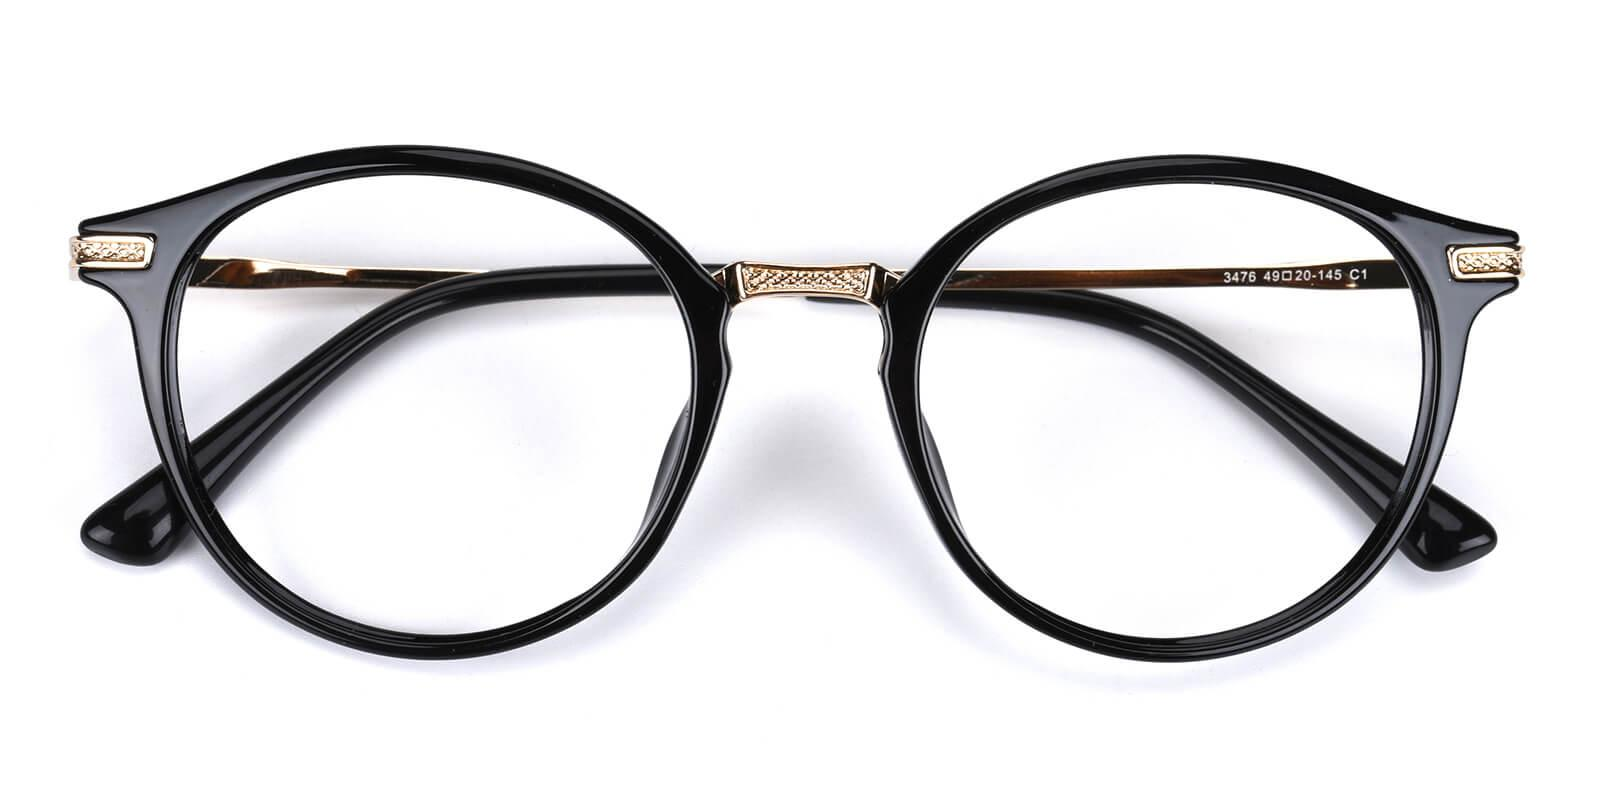 Rebel-Black-Round-Combination-Eyeglasses-detail